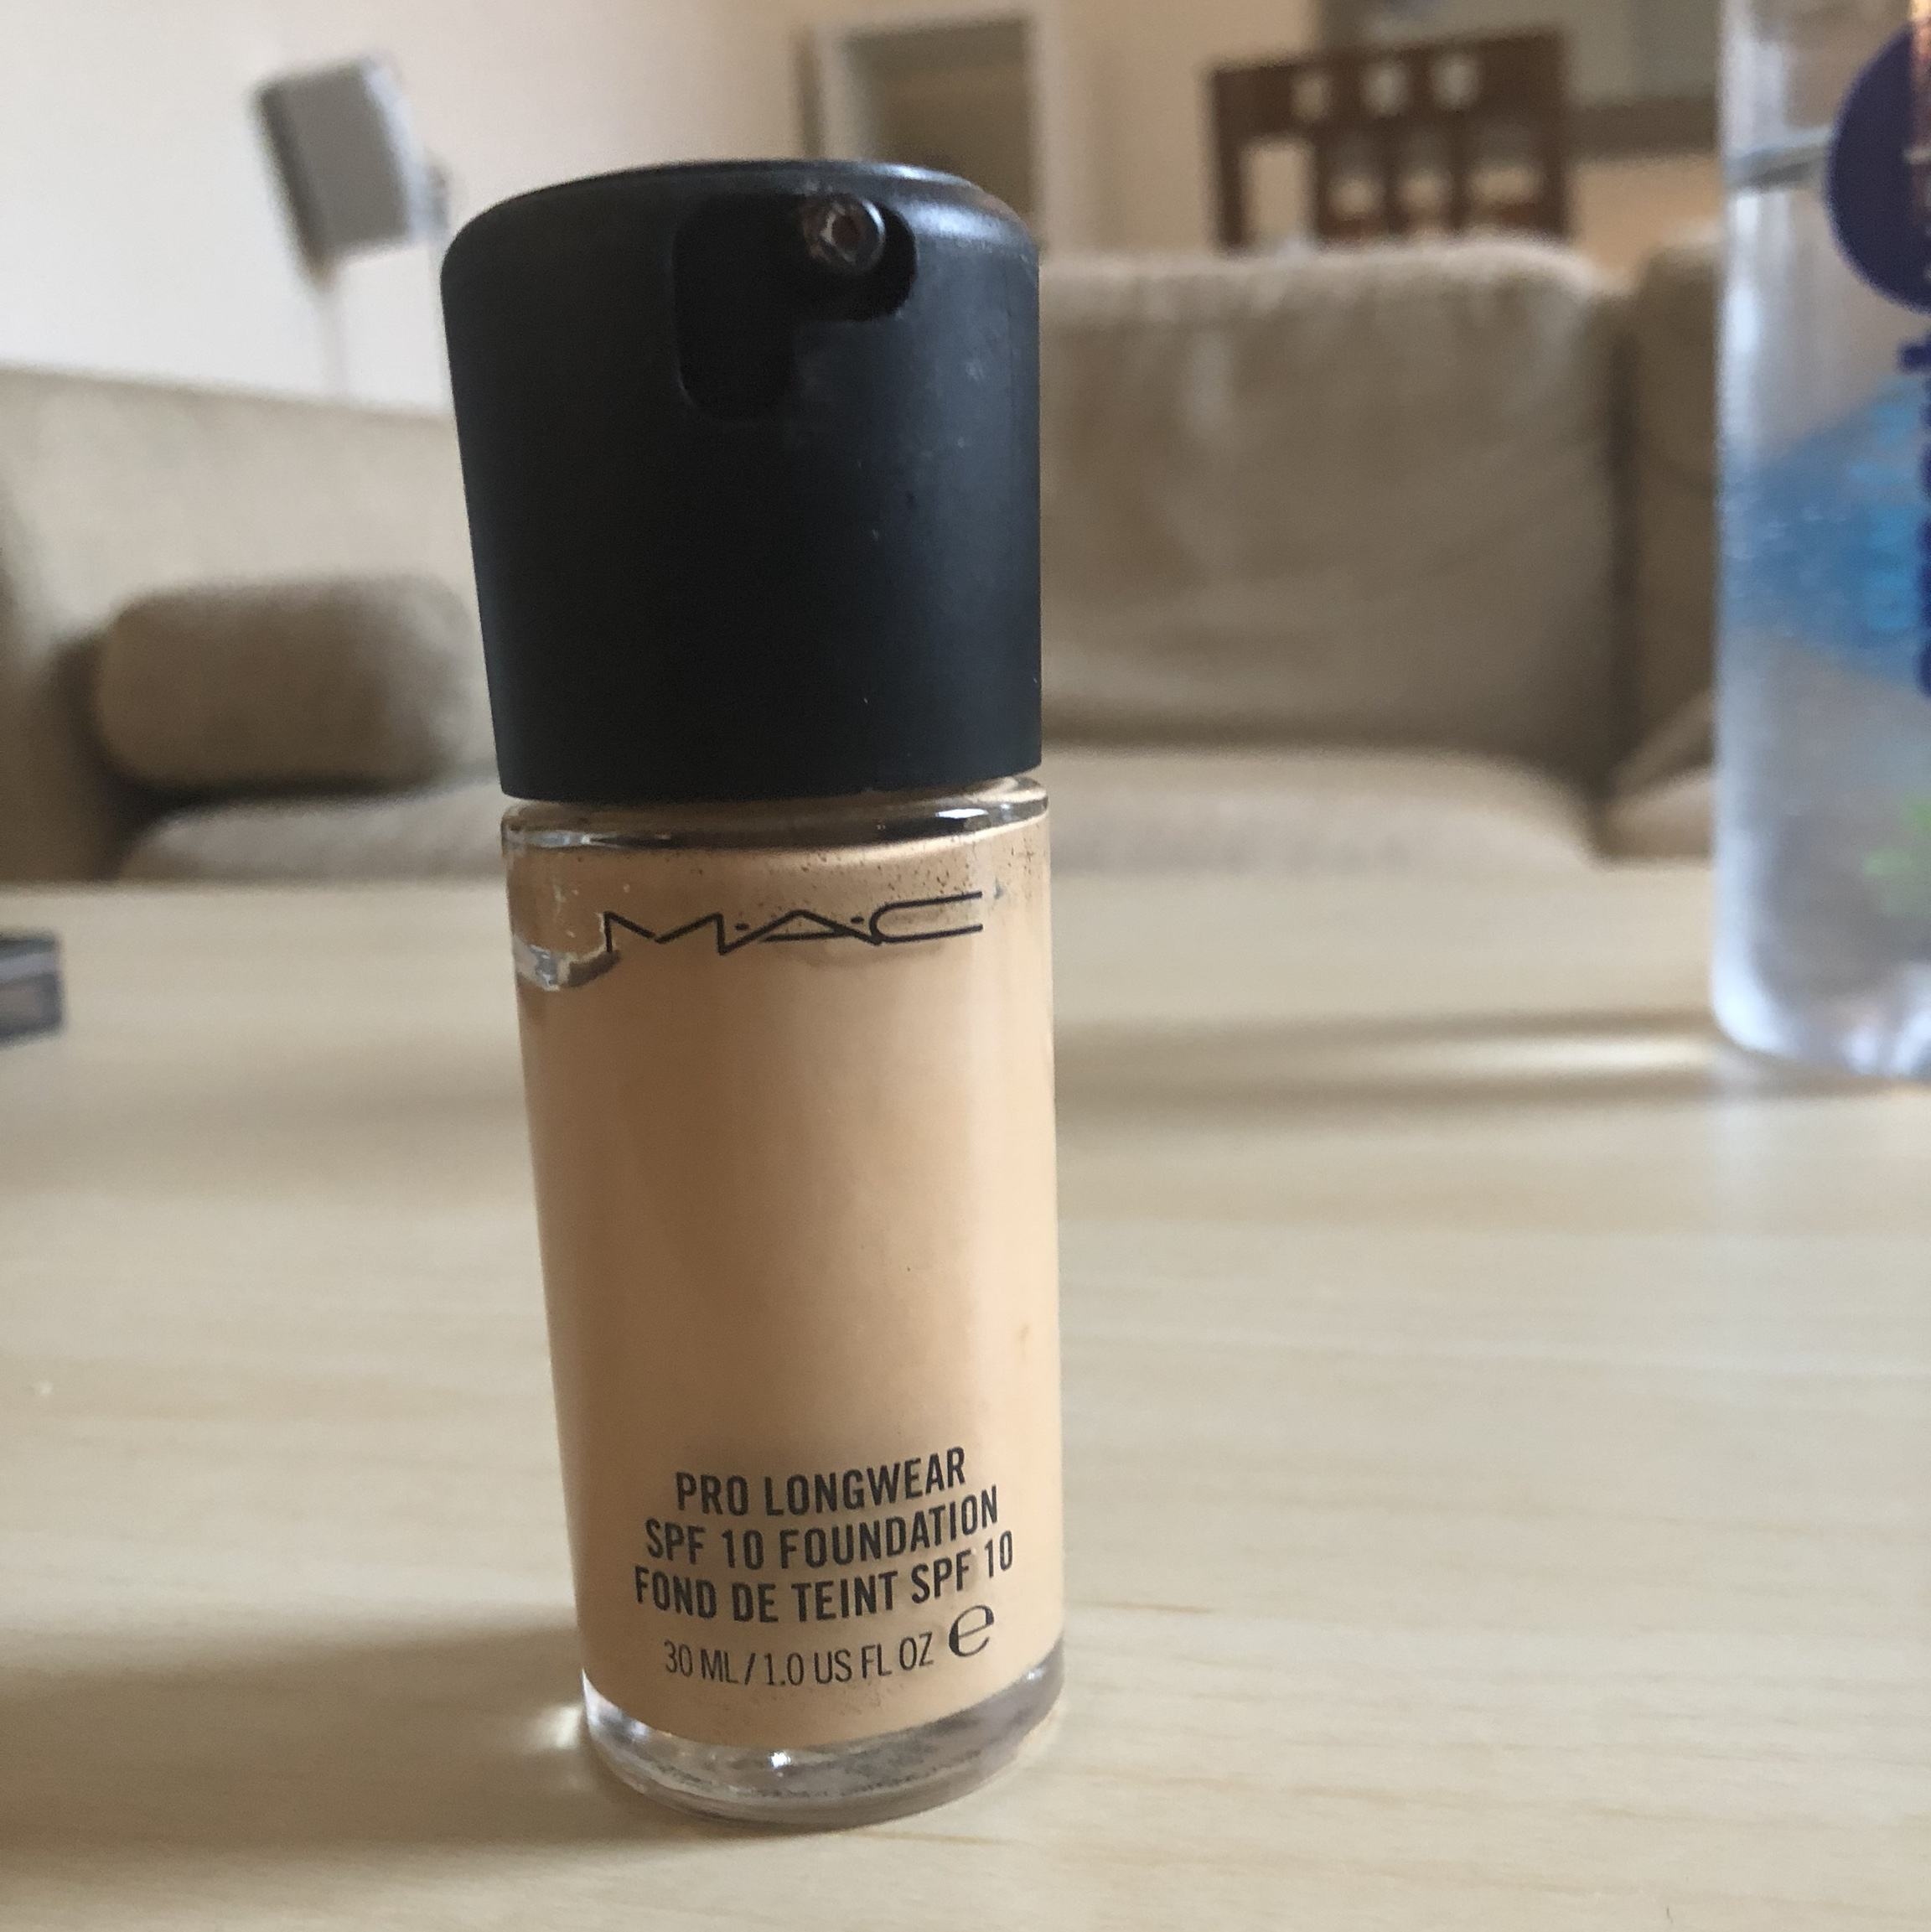 Mac Pro Longwear Spf 10 Foundation In Nc25 Used Depop